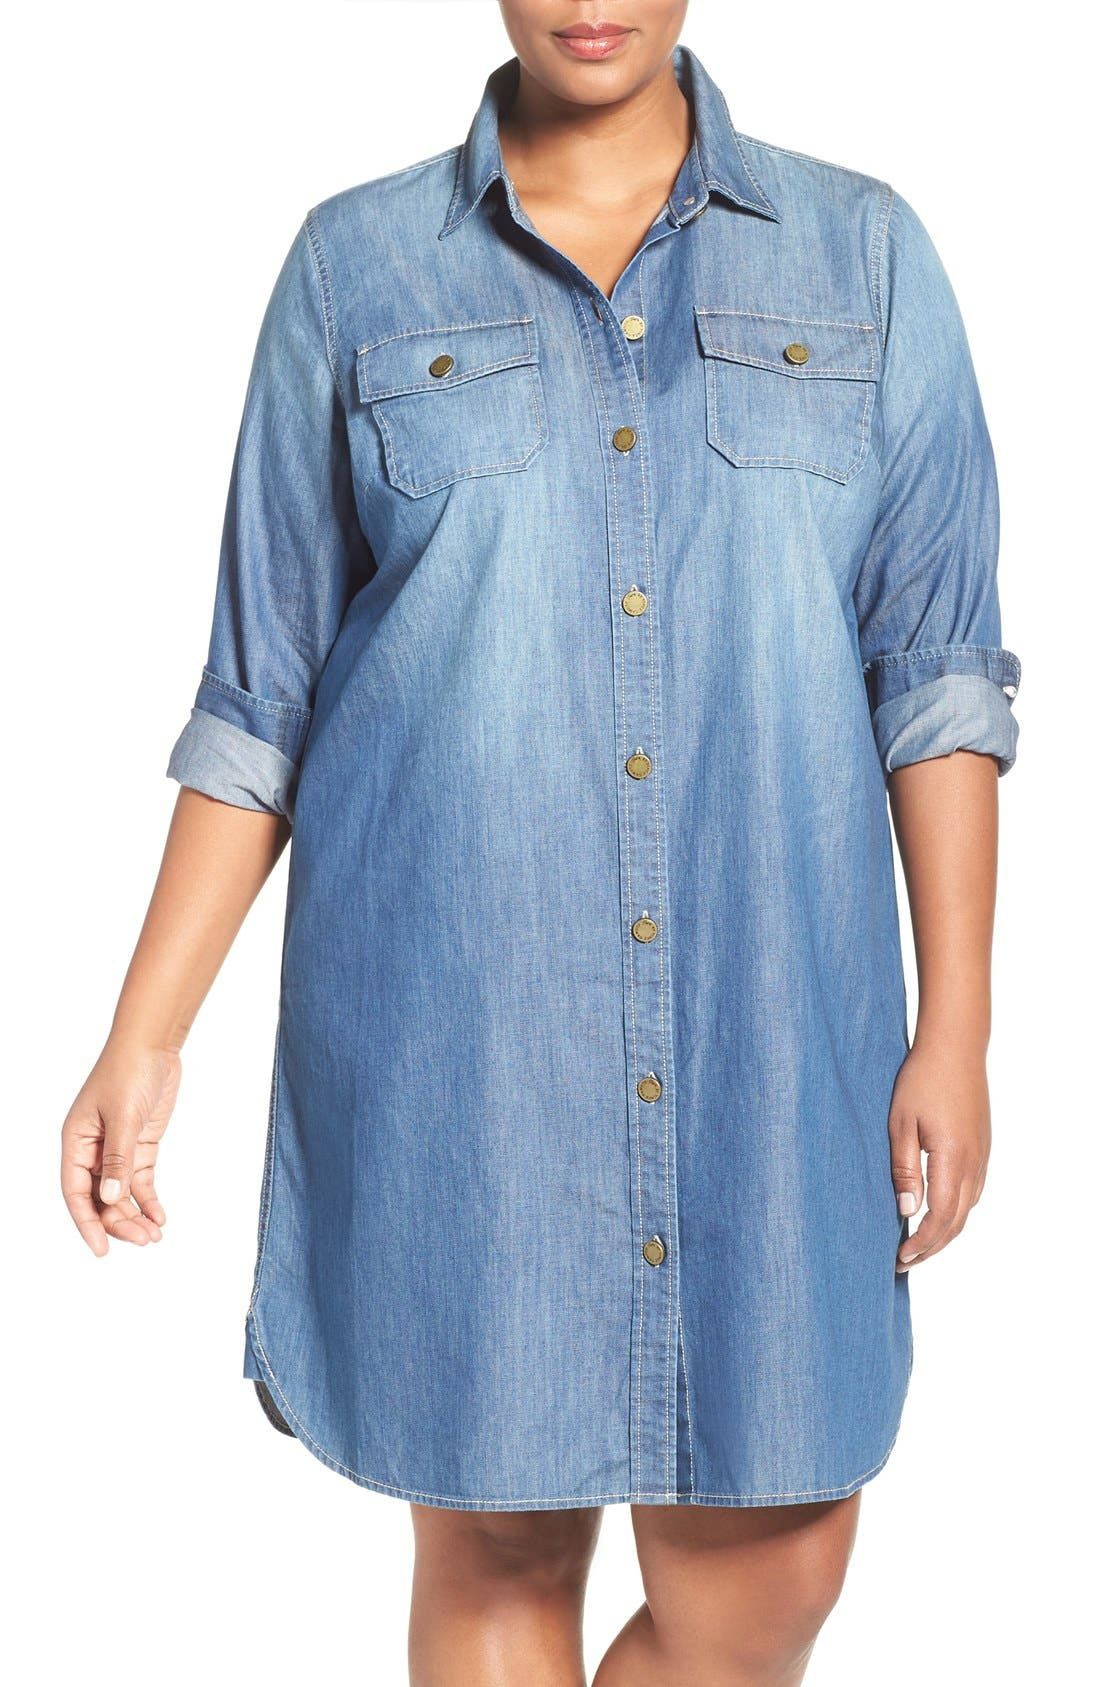 Main Image - Two by Vince Camuto Denim Shirtdress (Plus Size)